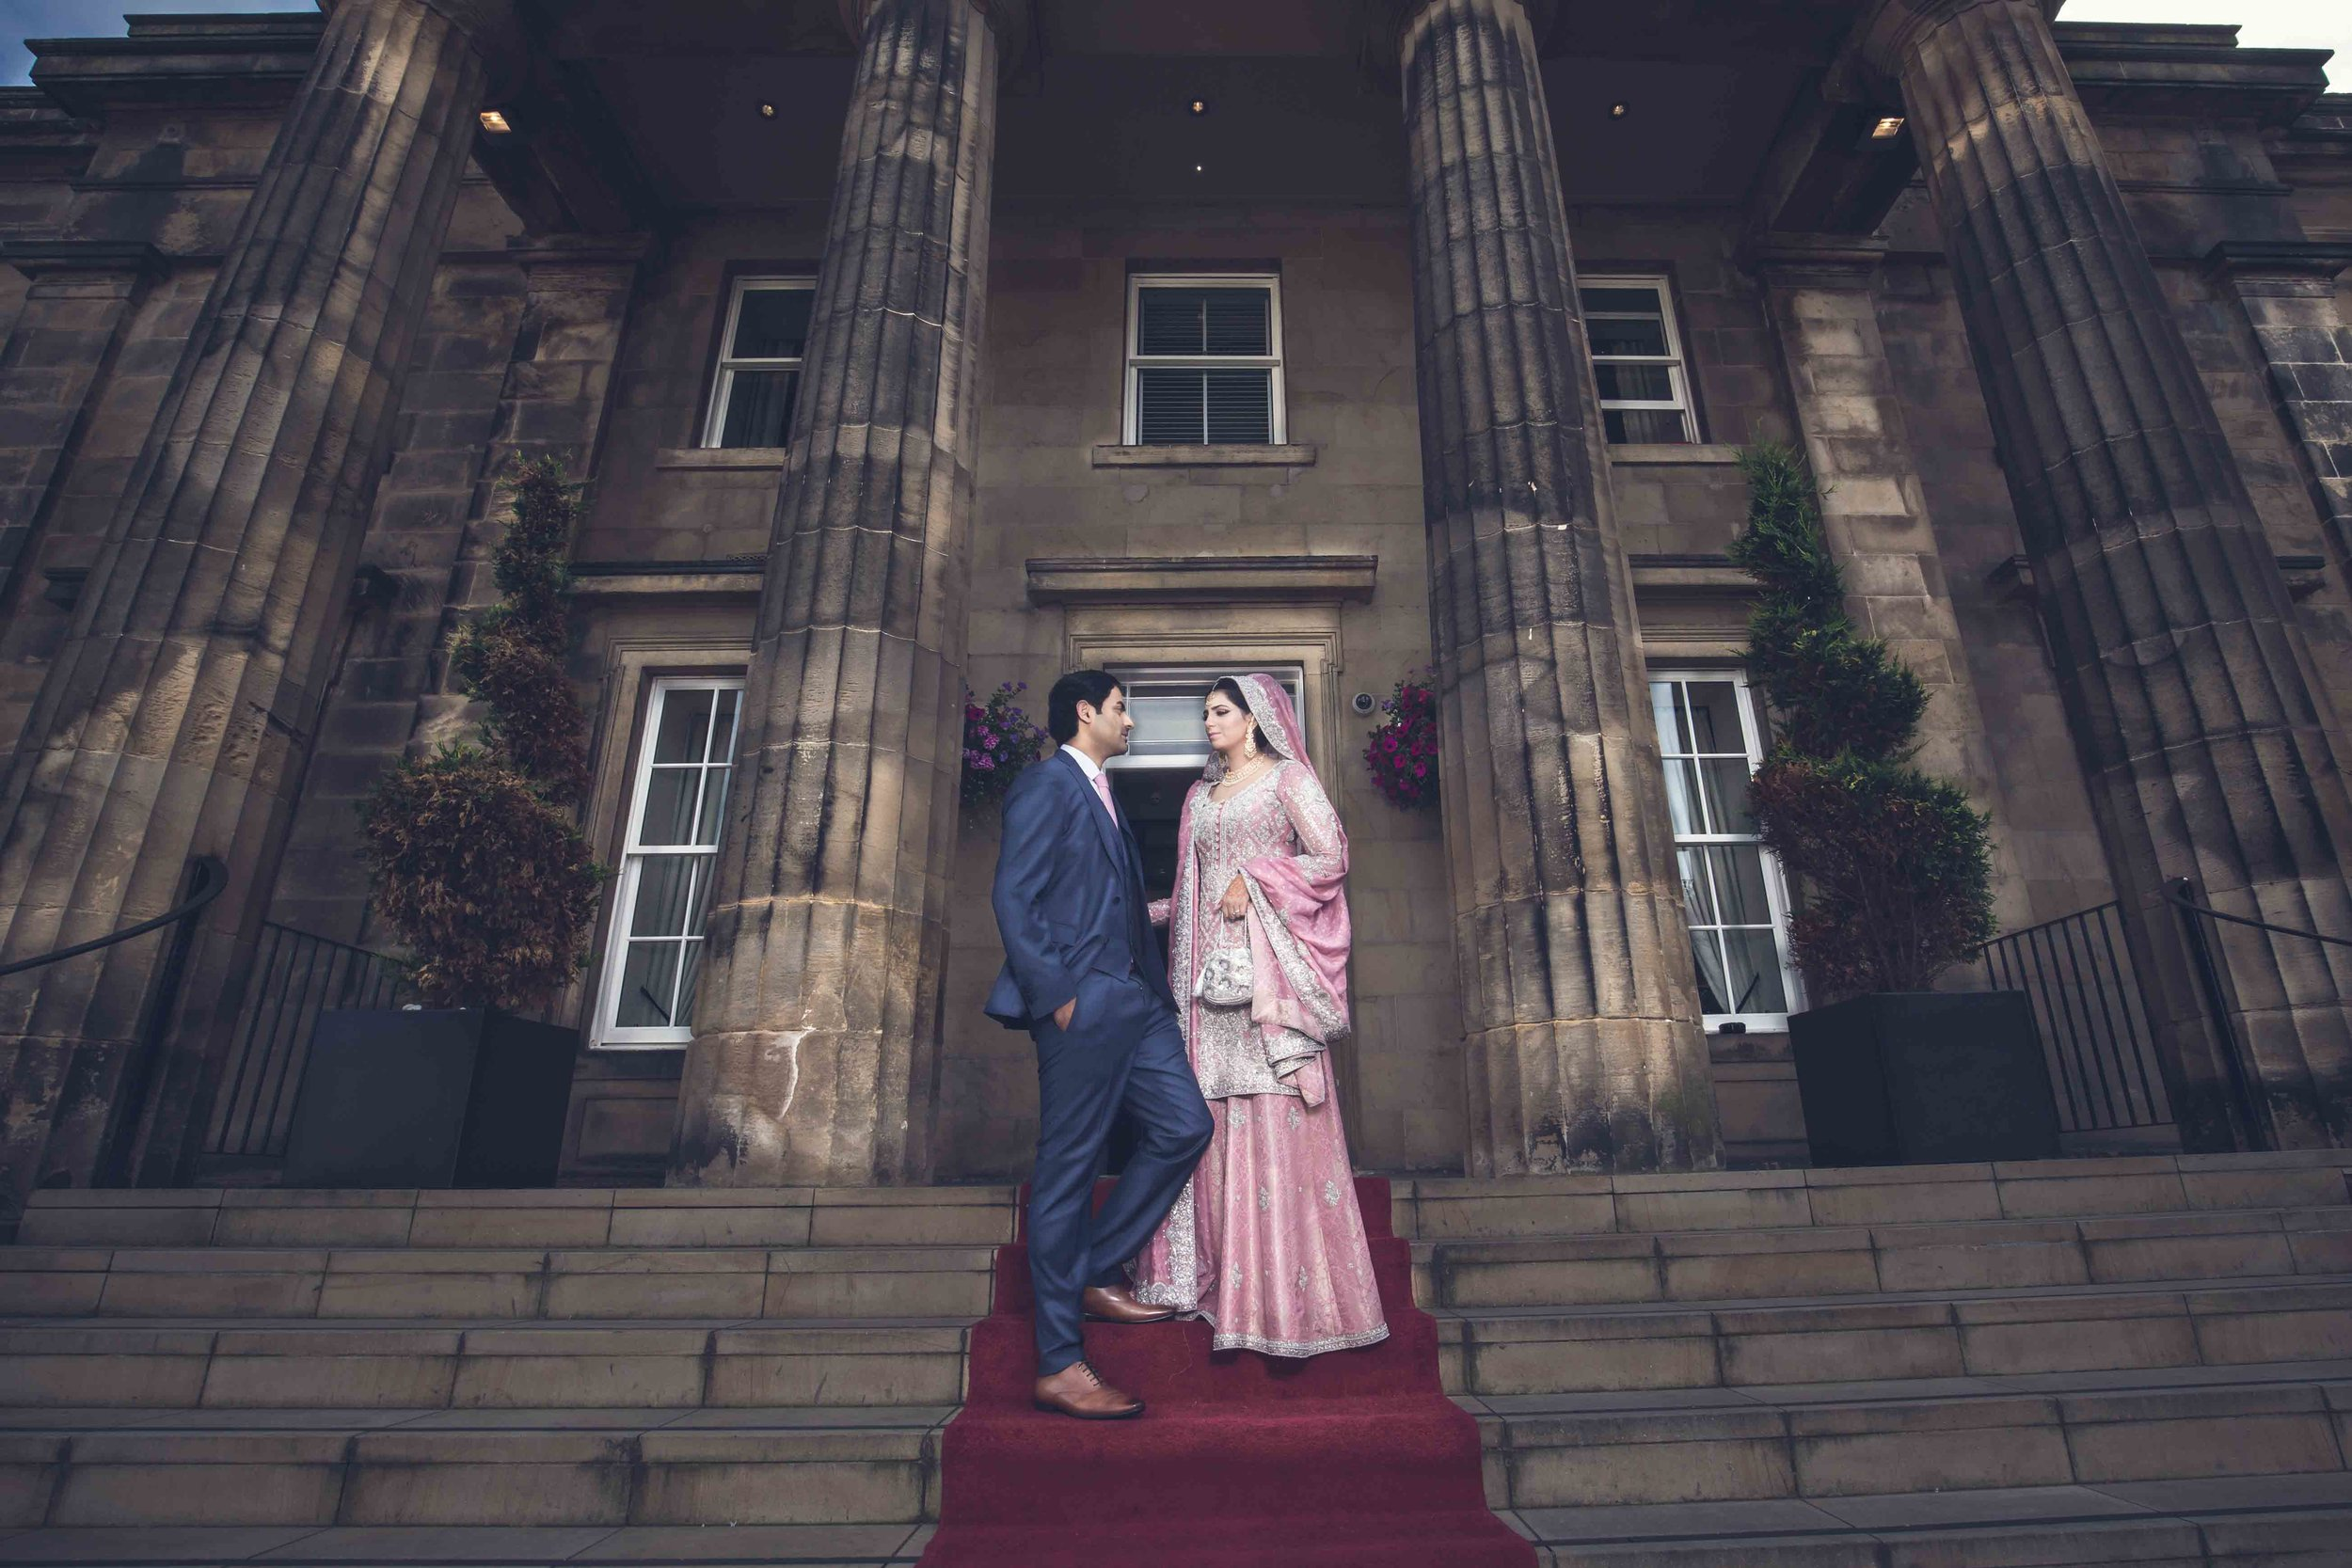 Asian Wedding Photographer Opu Sultan Photography Scotland Edinburgh Glasgow London Manchester Liverpool Birmingham Wedding Photos Salman & Maha Blog Photos-14.jpg